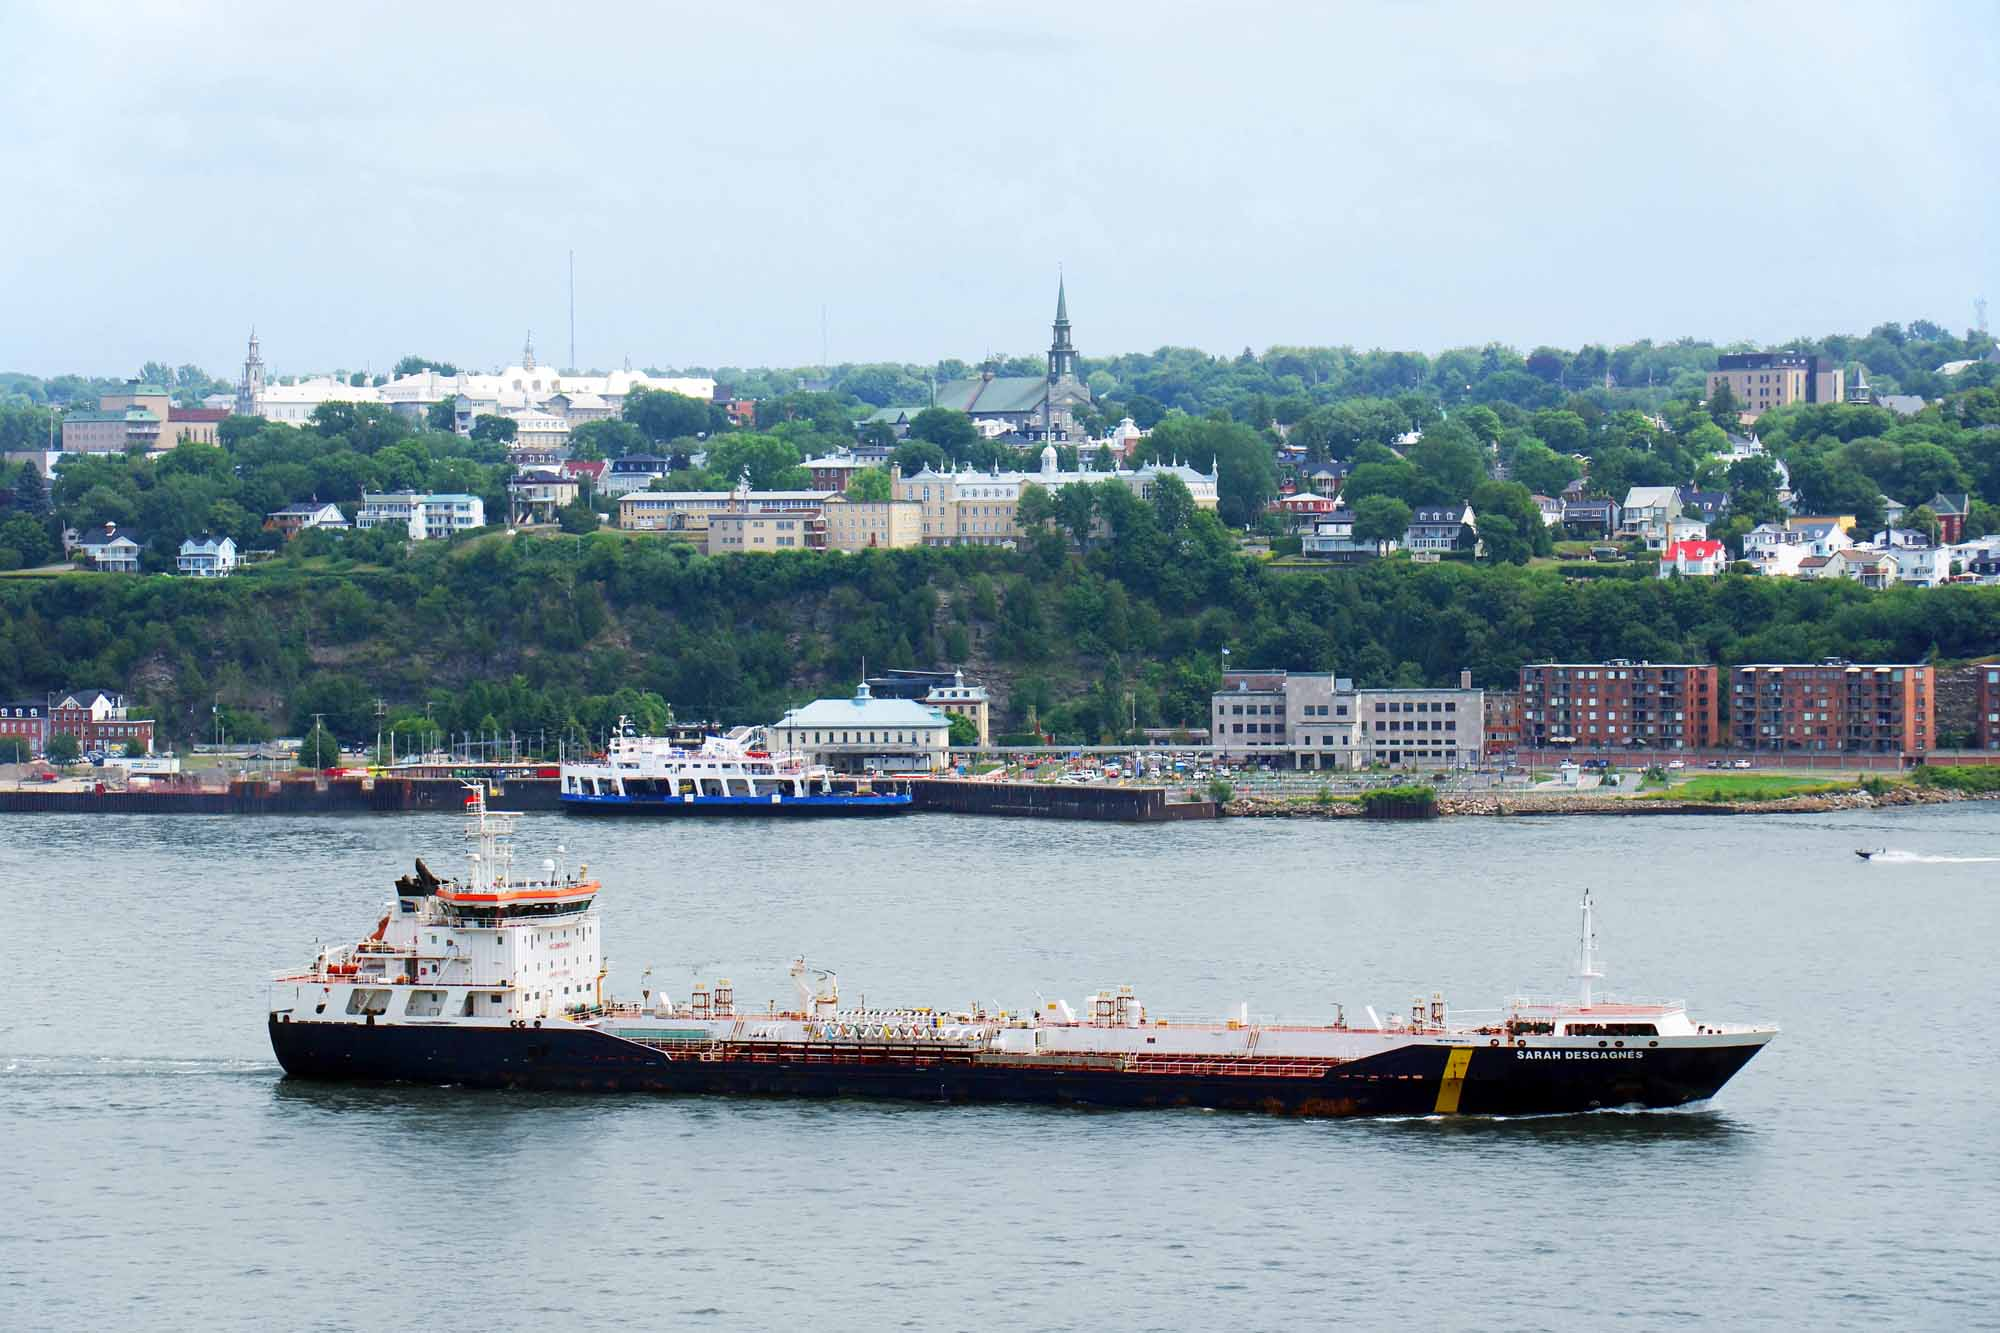 Oil tanker on the St Lawrence